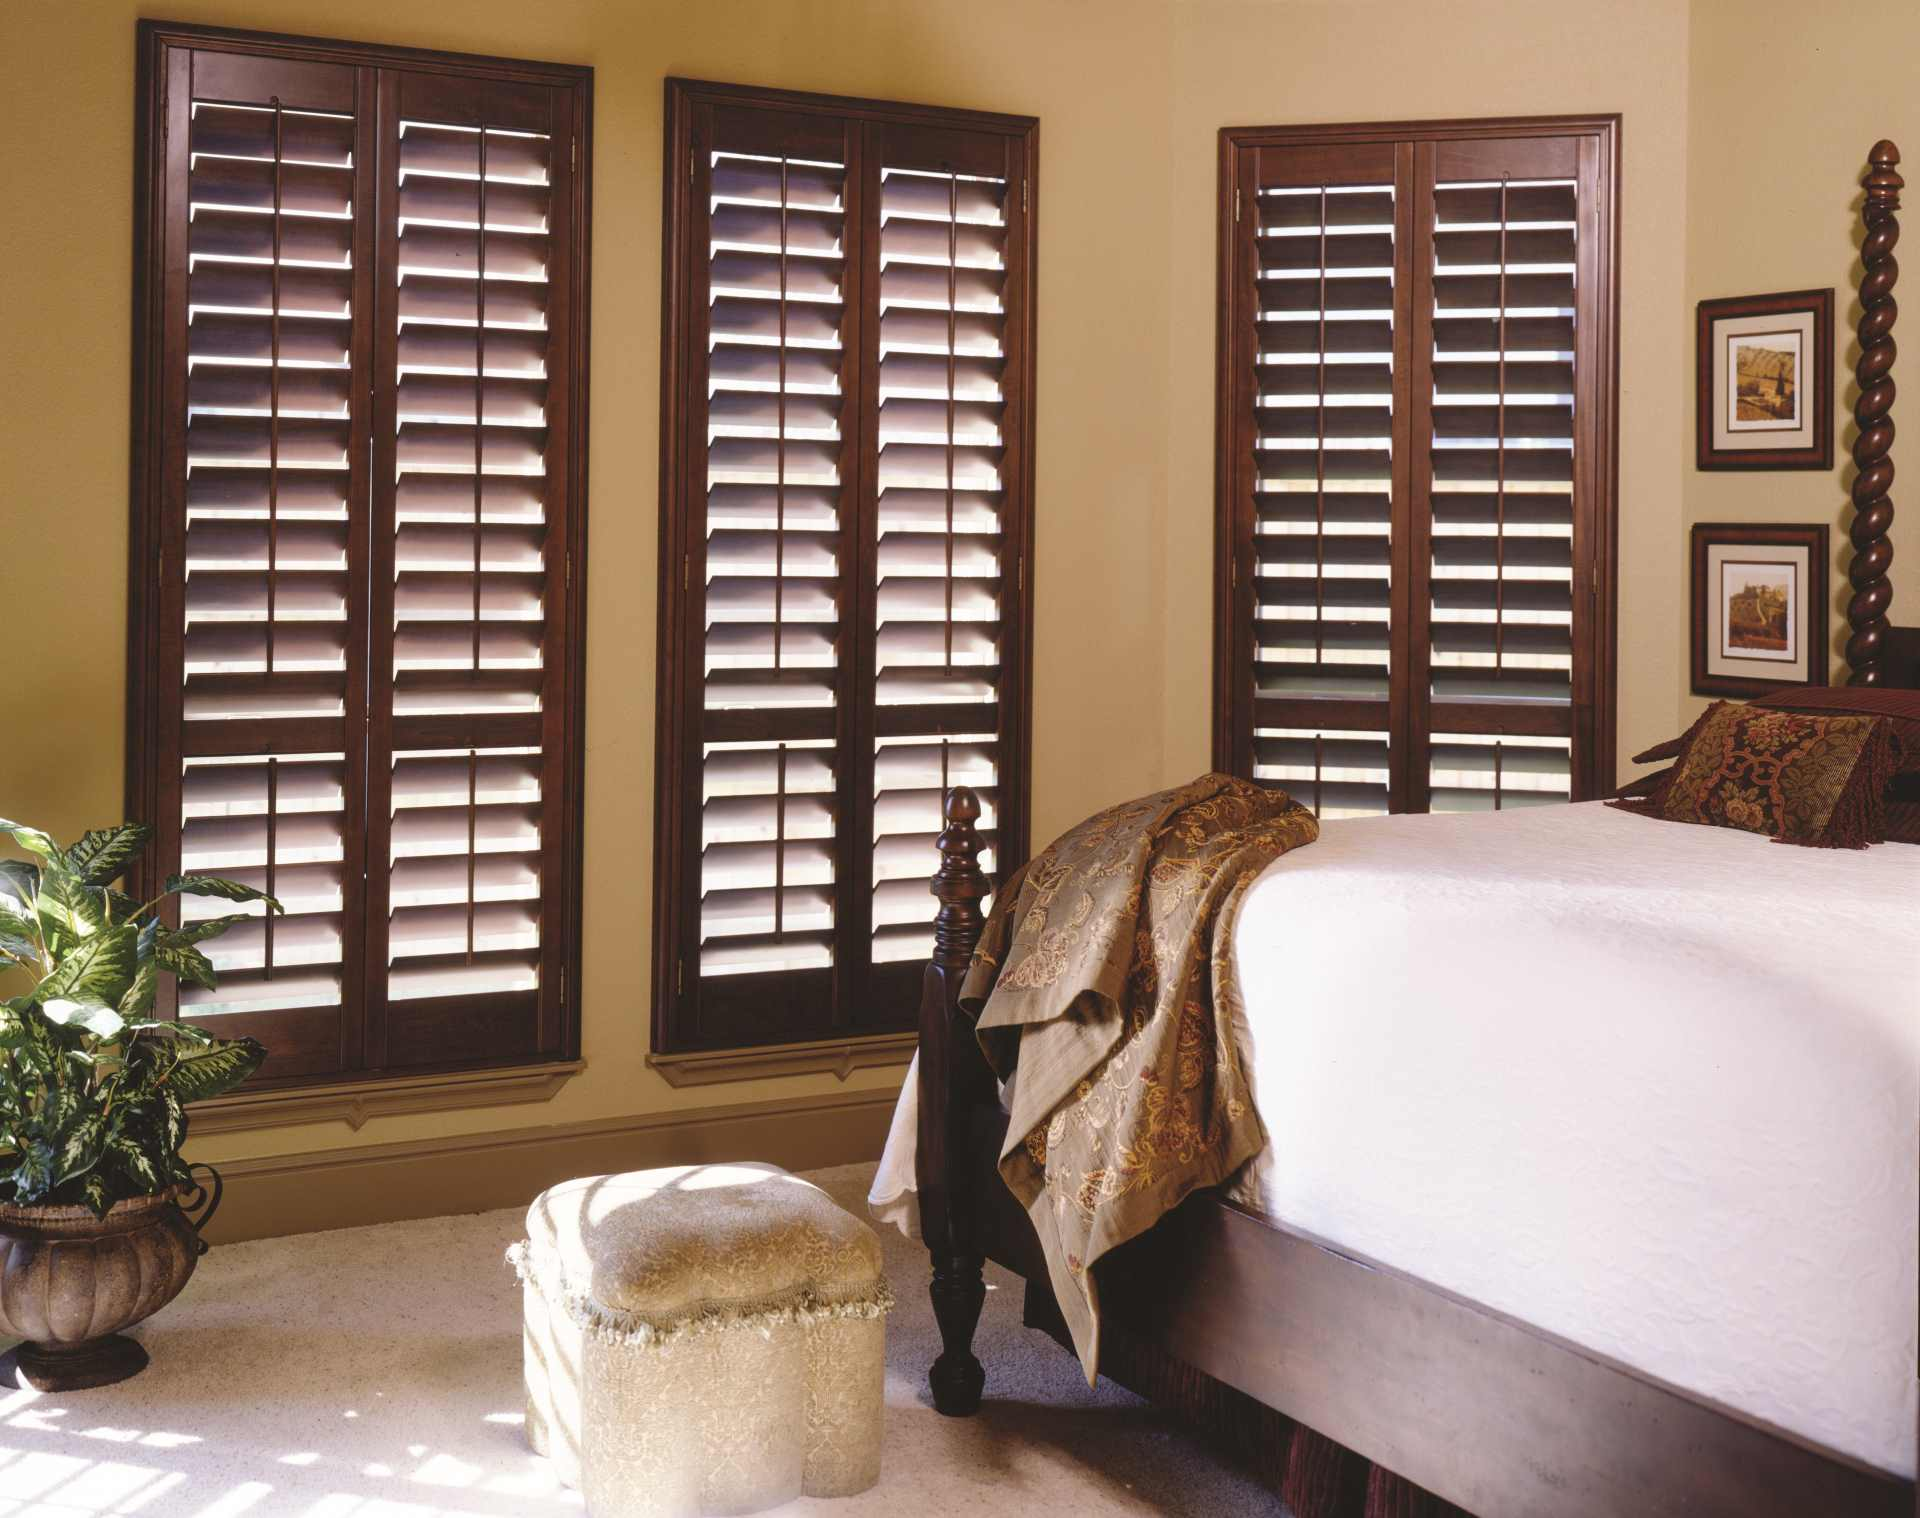 norman-sussex-shutters